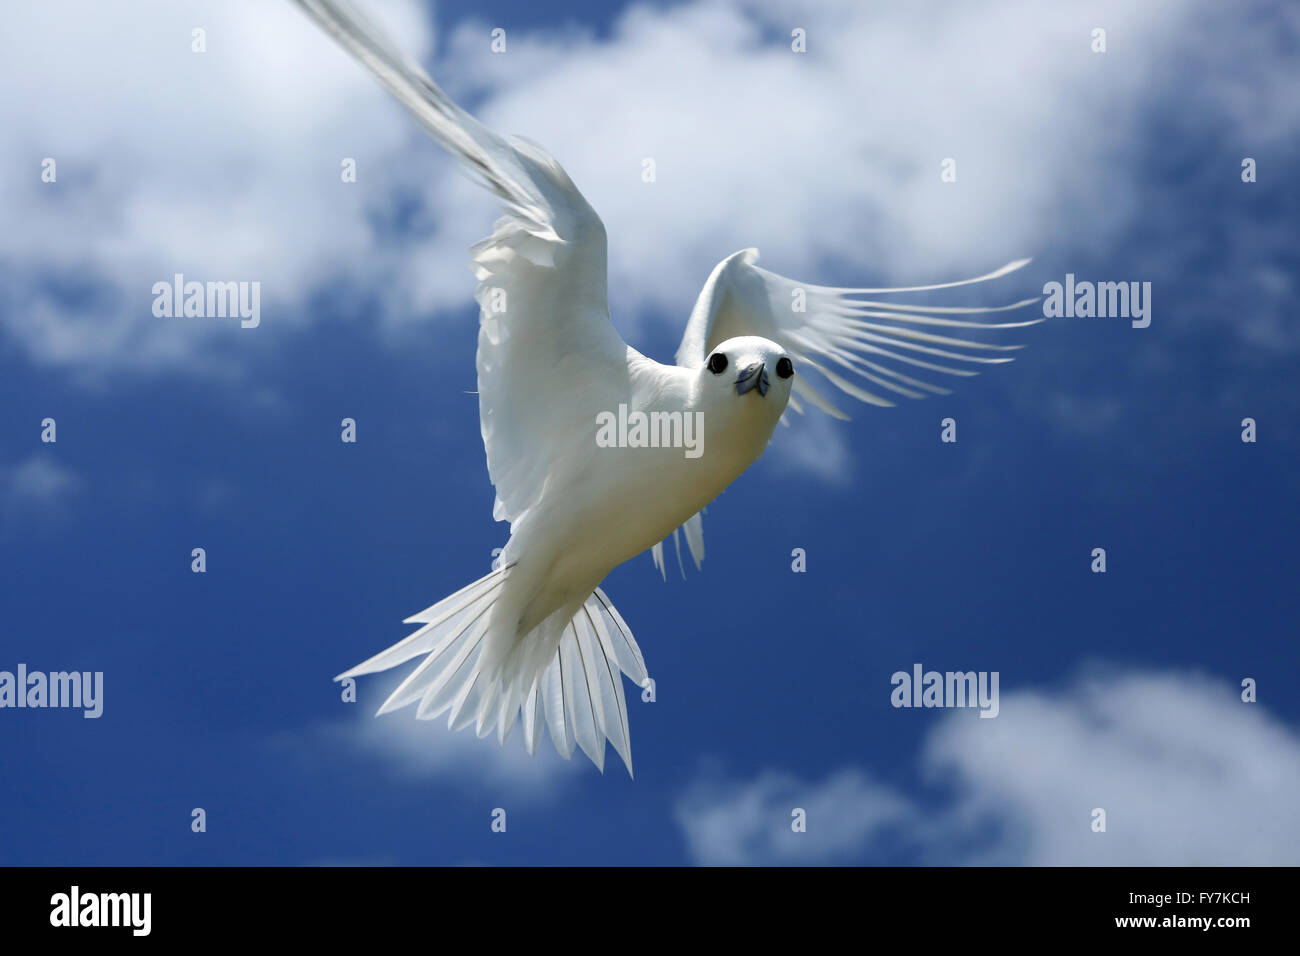 Flying Fairy Tern Bird Stock Photo 102816465 Alamy